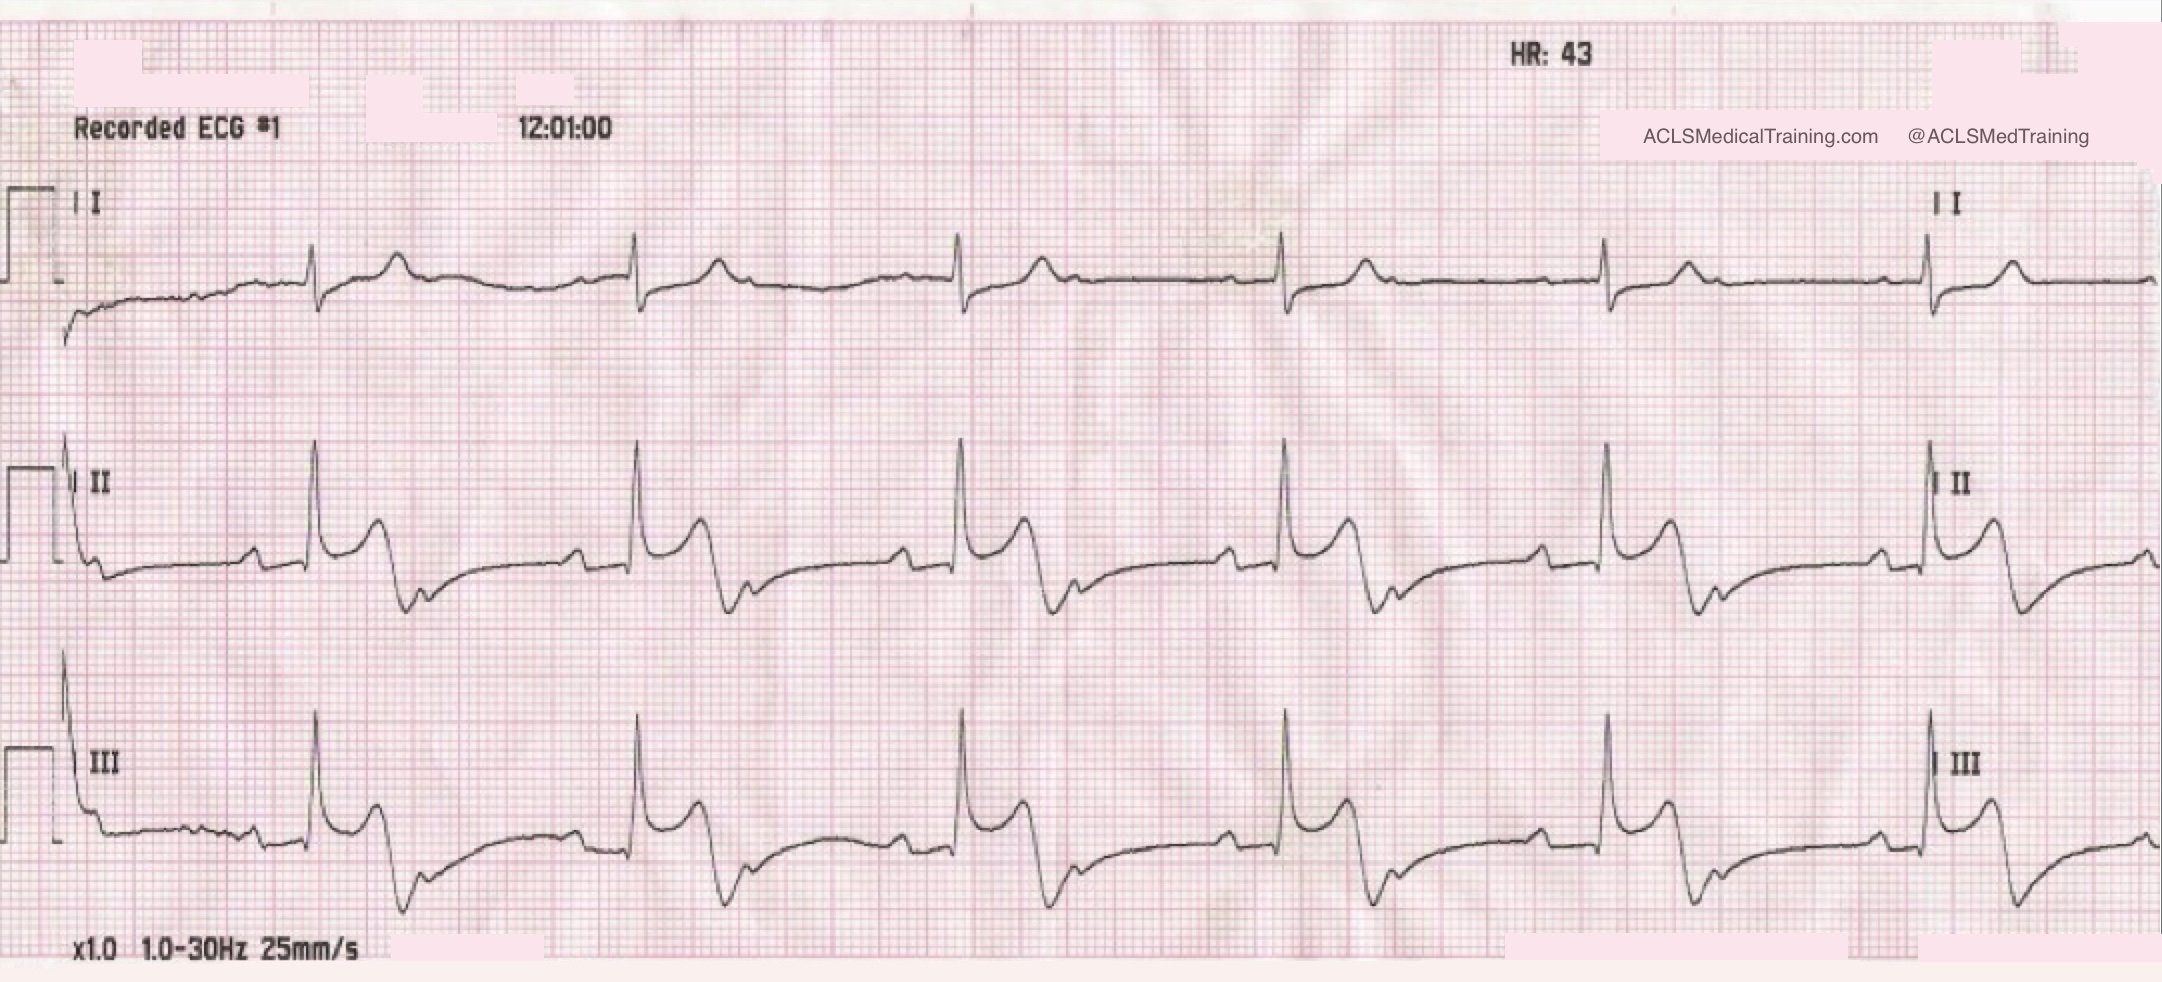 The initial ECG showed second degree AV block with 2:1 conduction.